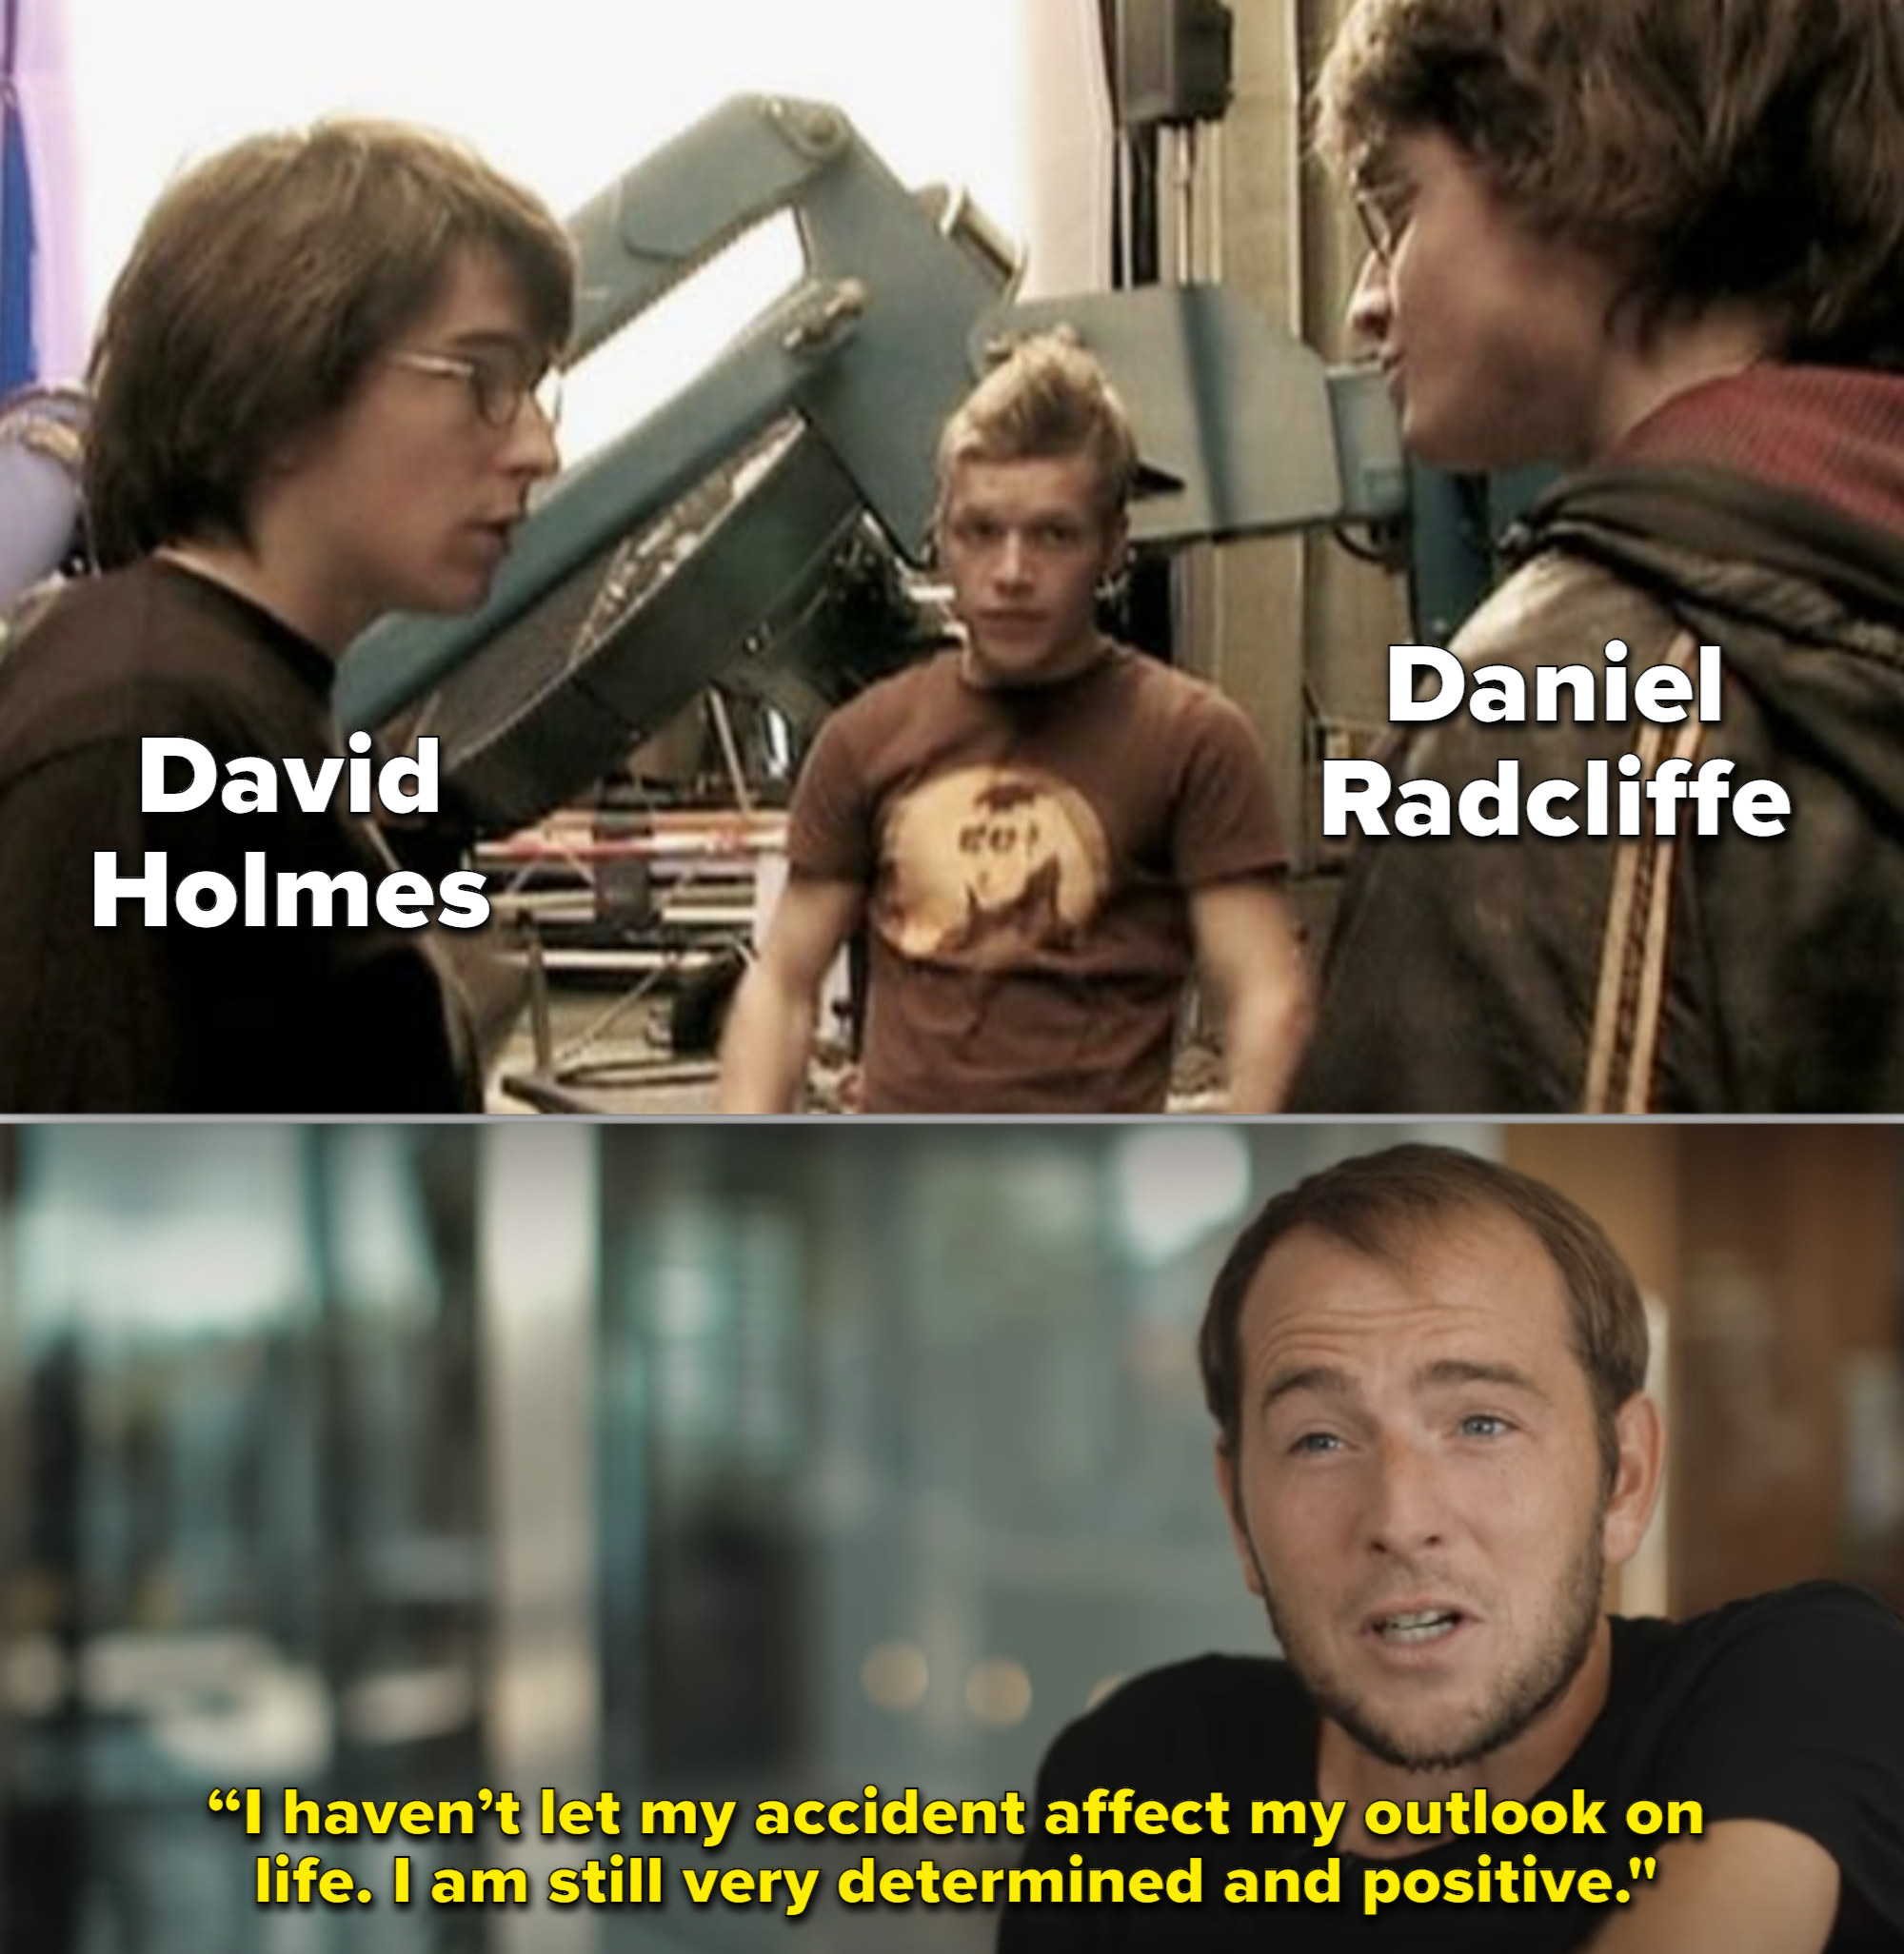 Behind-the-scenes footage of Holmes and Radcliffe together